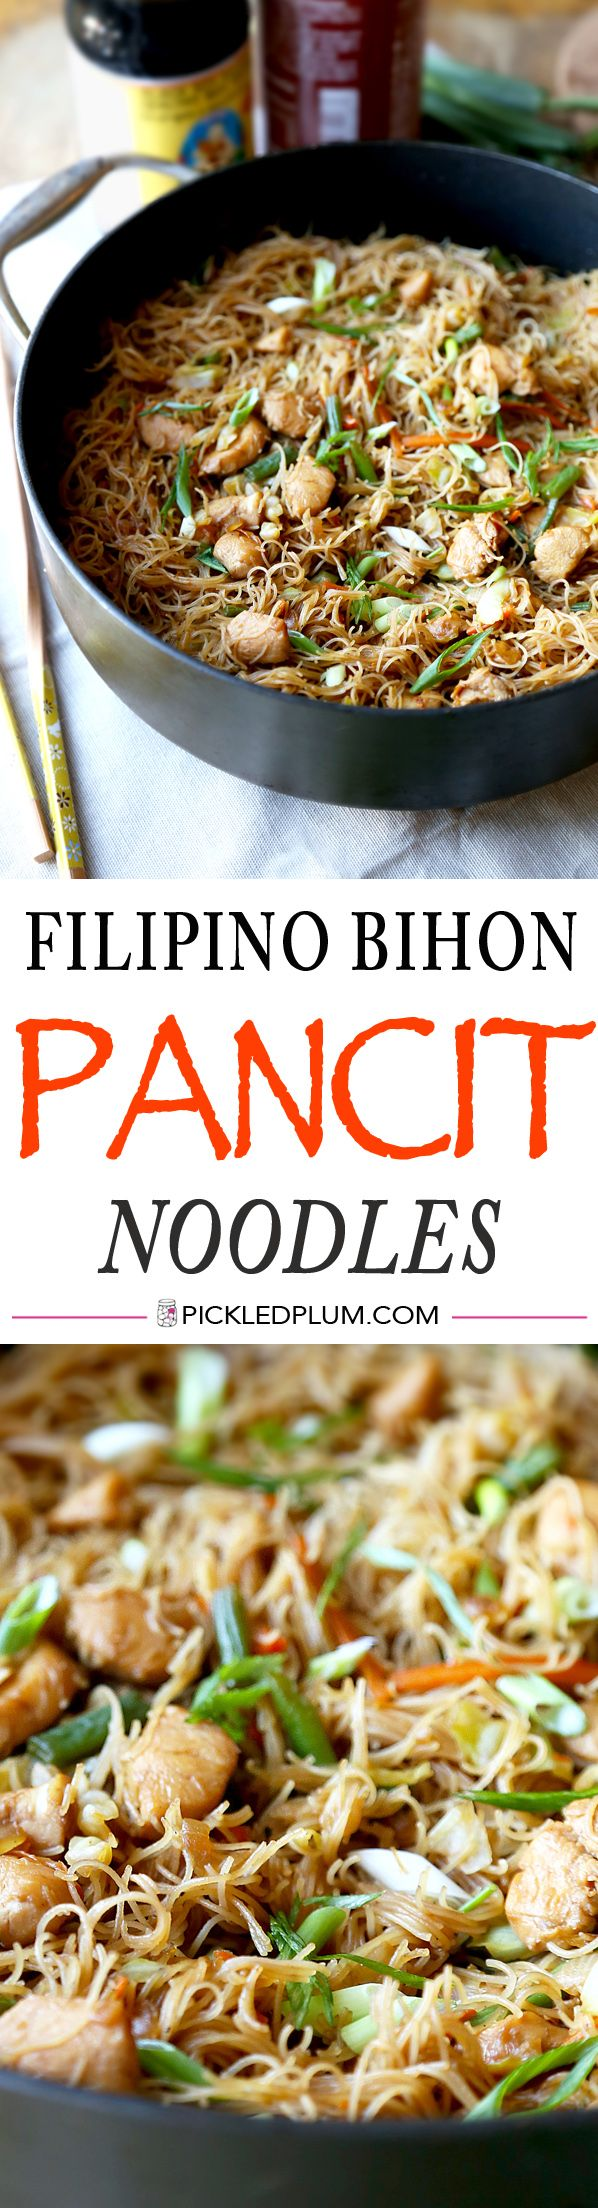 2279 best filipino foods recipes images on pinterest filipino bihon pancit recipe filipino forumfinder Image collections